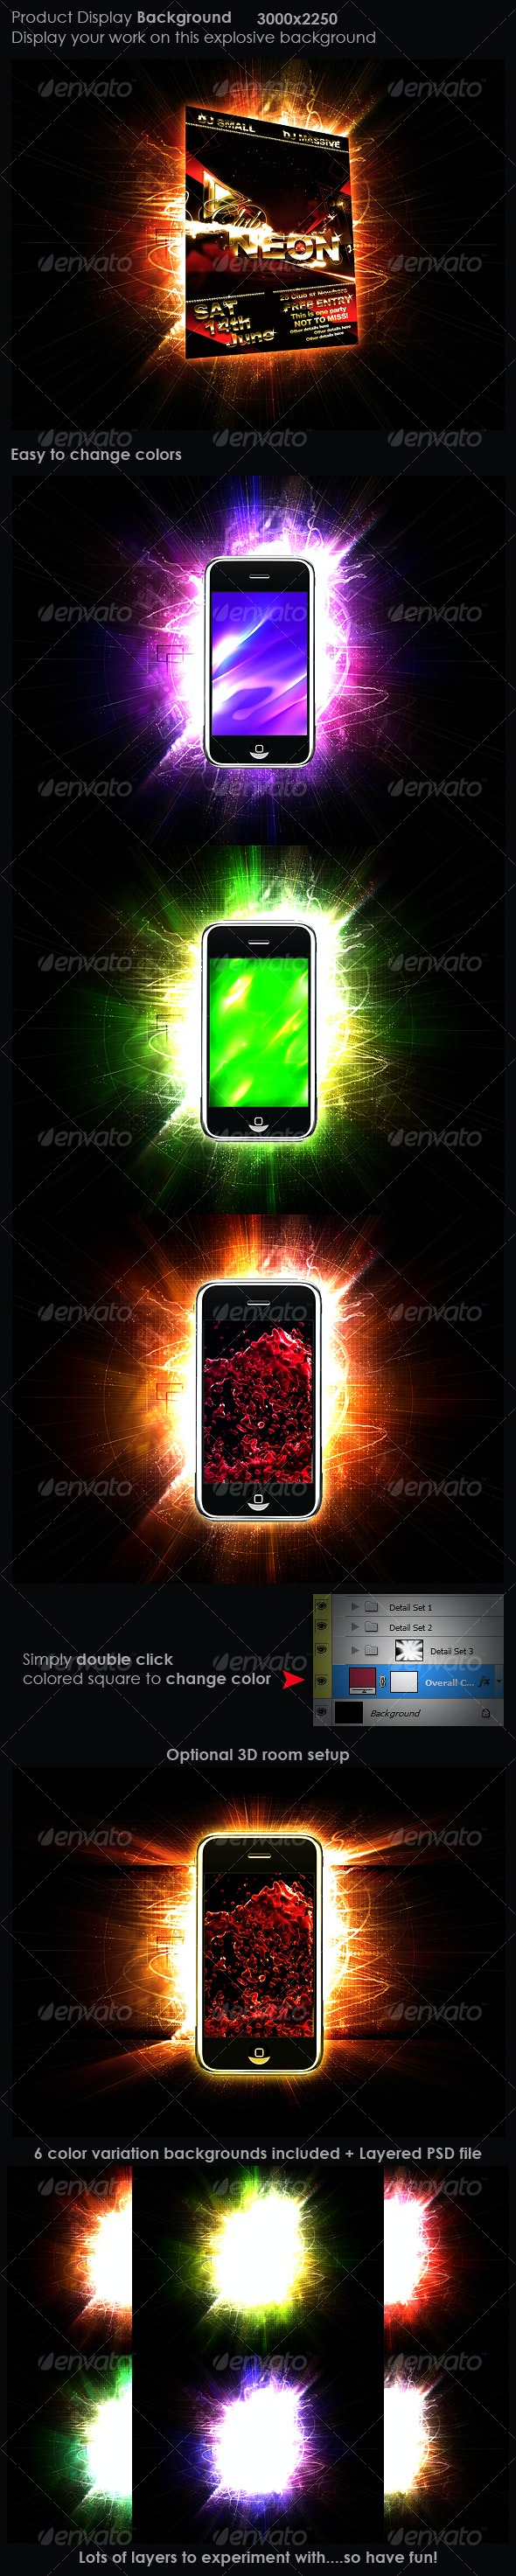 Product Display Background 1 - Backgrounds Graphics